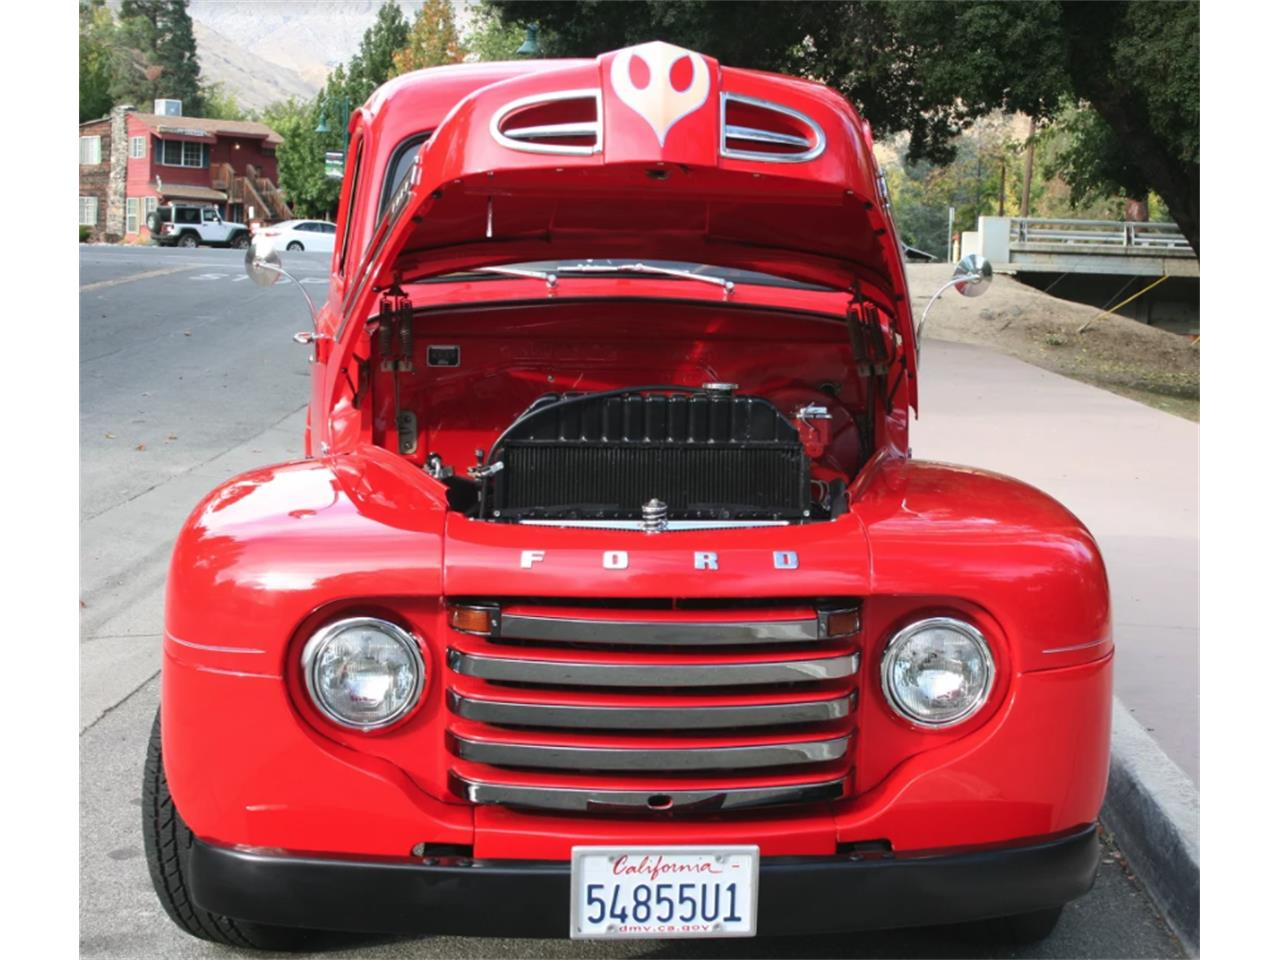 Large Picture of 1950 Ford Pickup - $33,000.00 Offered by a Private Seller - LLLJ